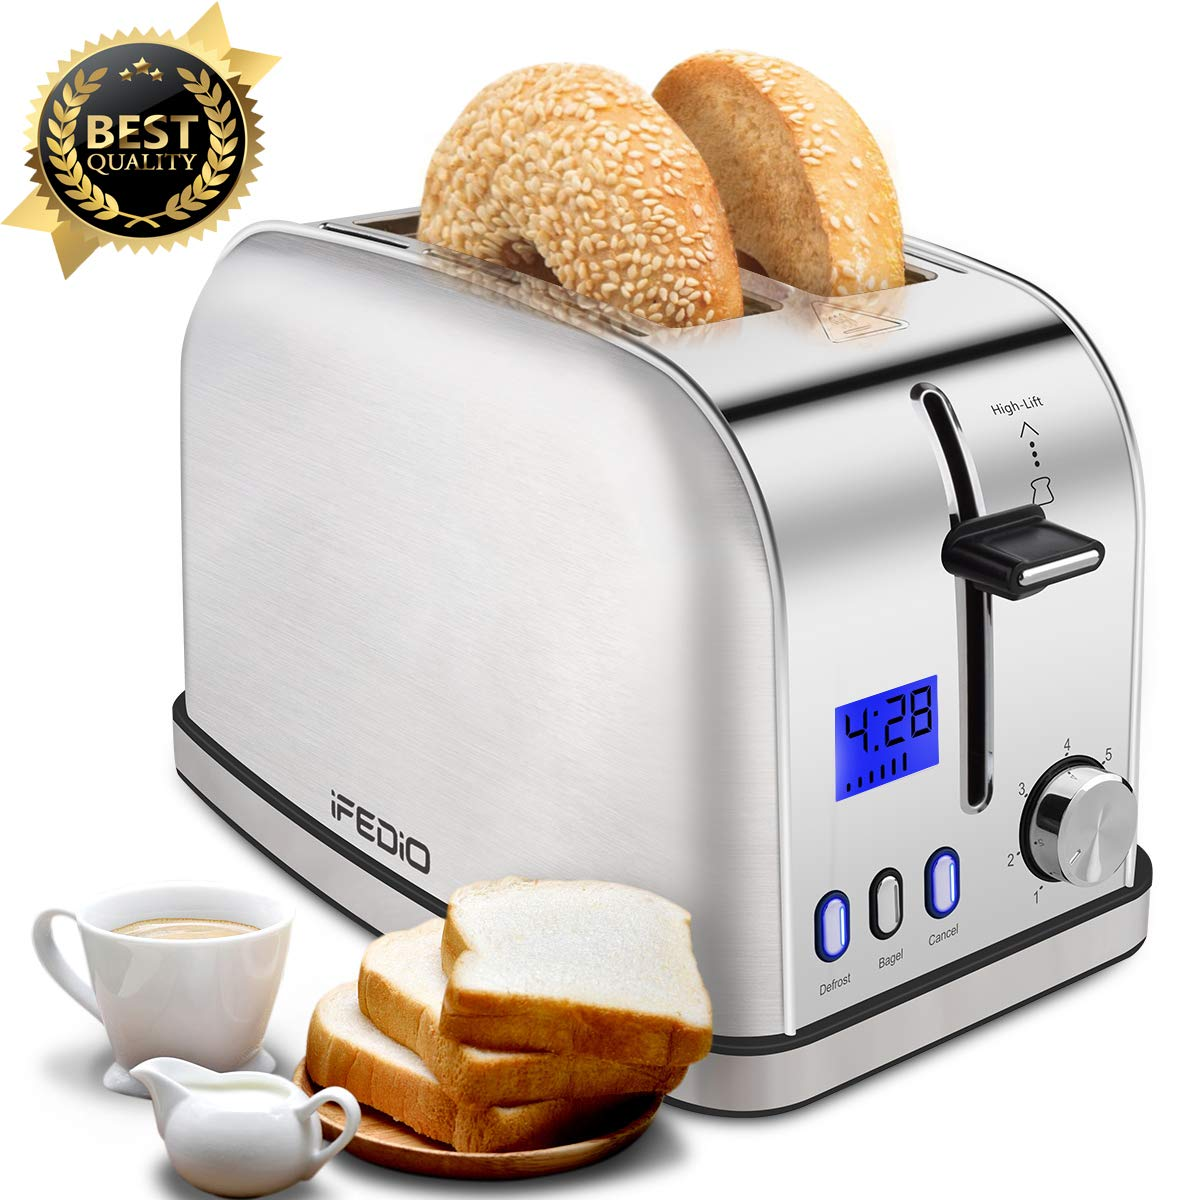 2 Slice Toaster Compact Stainless Steel Toaster with LED Timer Display Wide Slots Bagle Defrost Cancel Function for Breakfast Newest Version Toaster 900W-Silver by iFedio